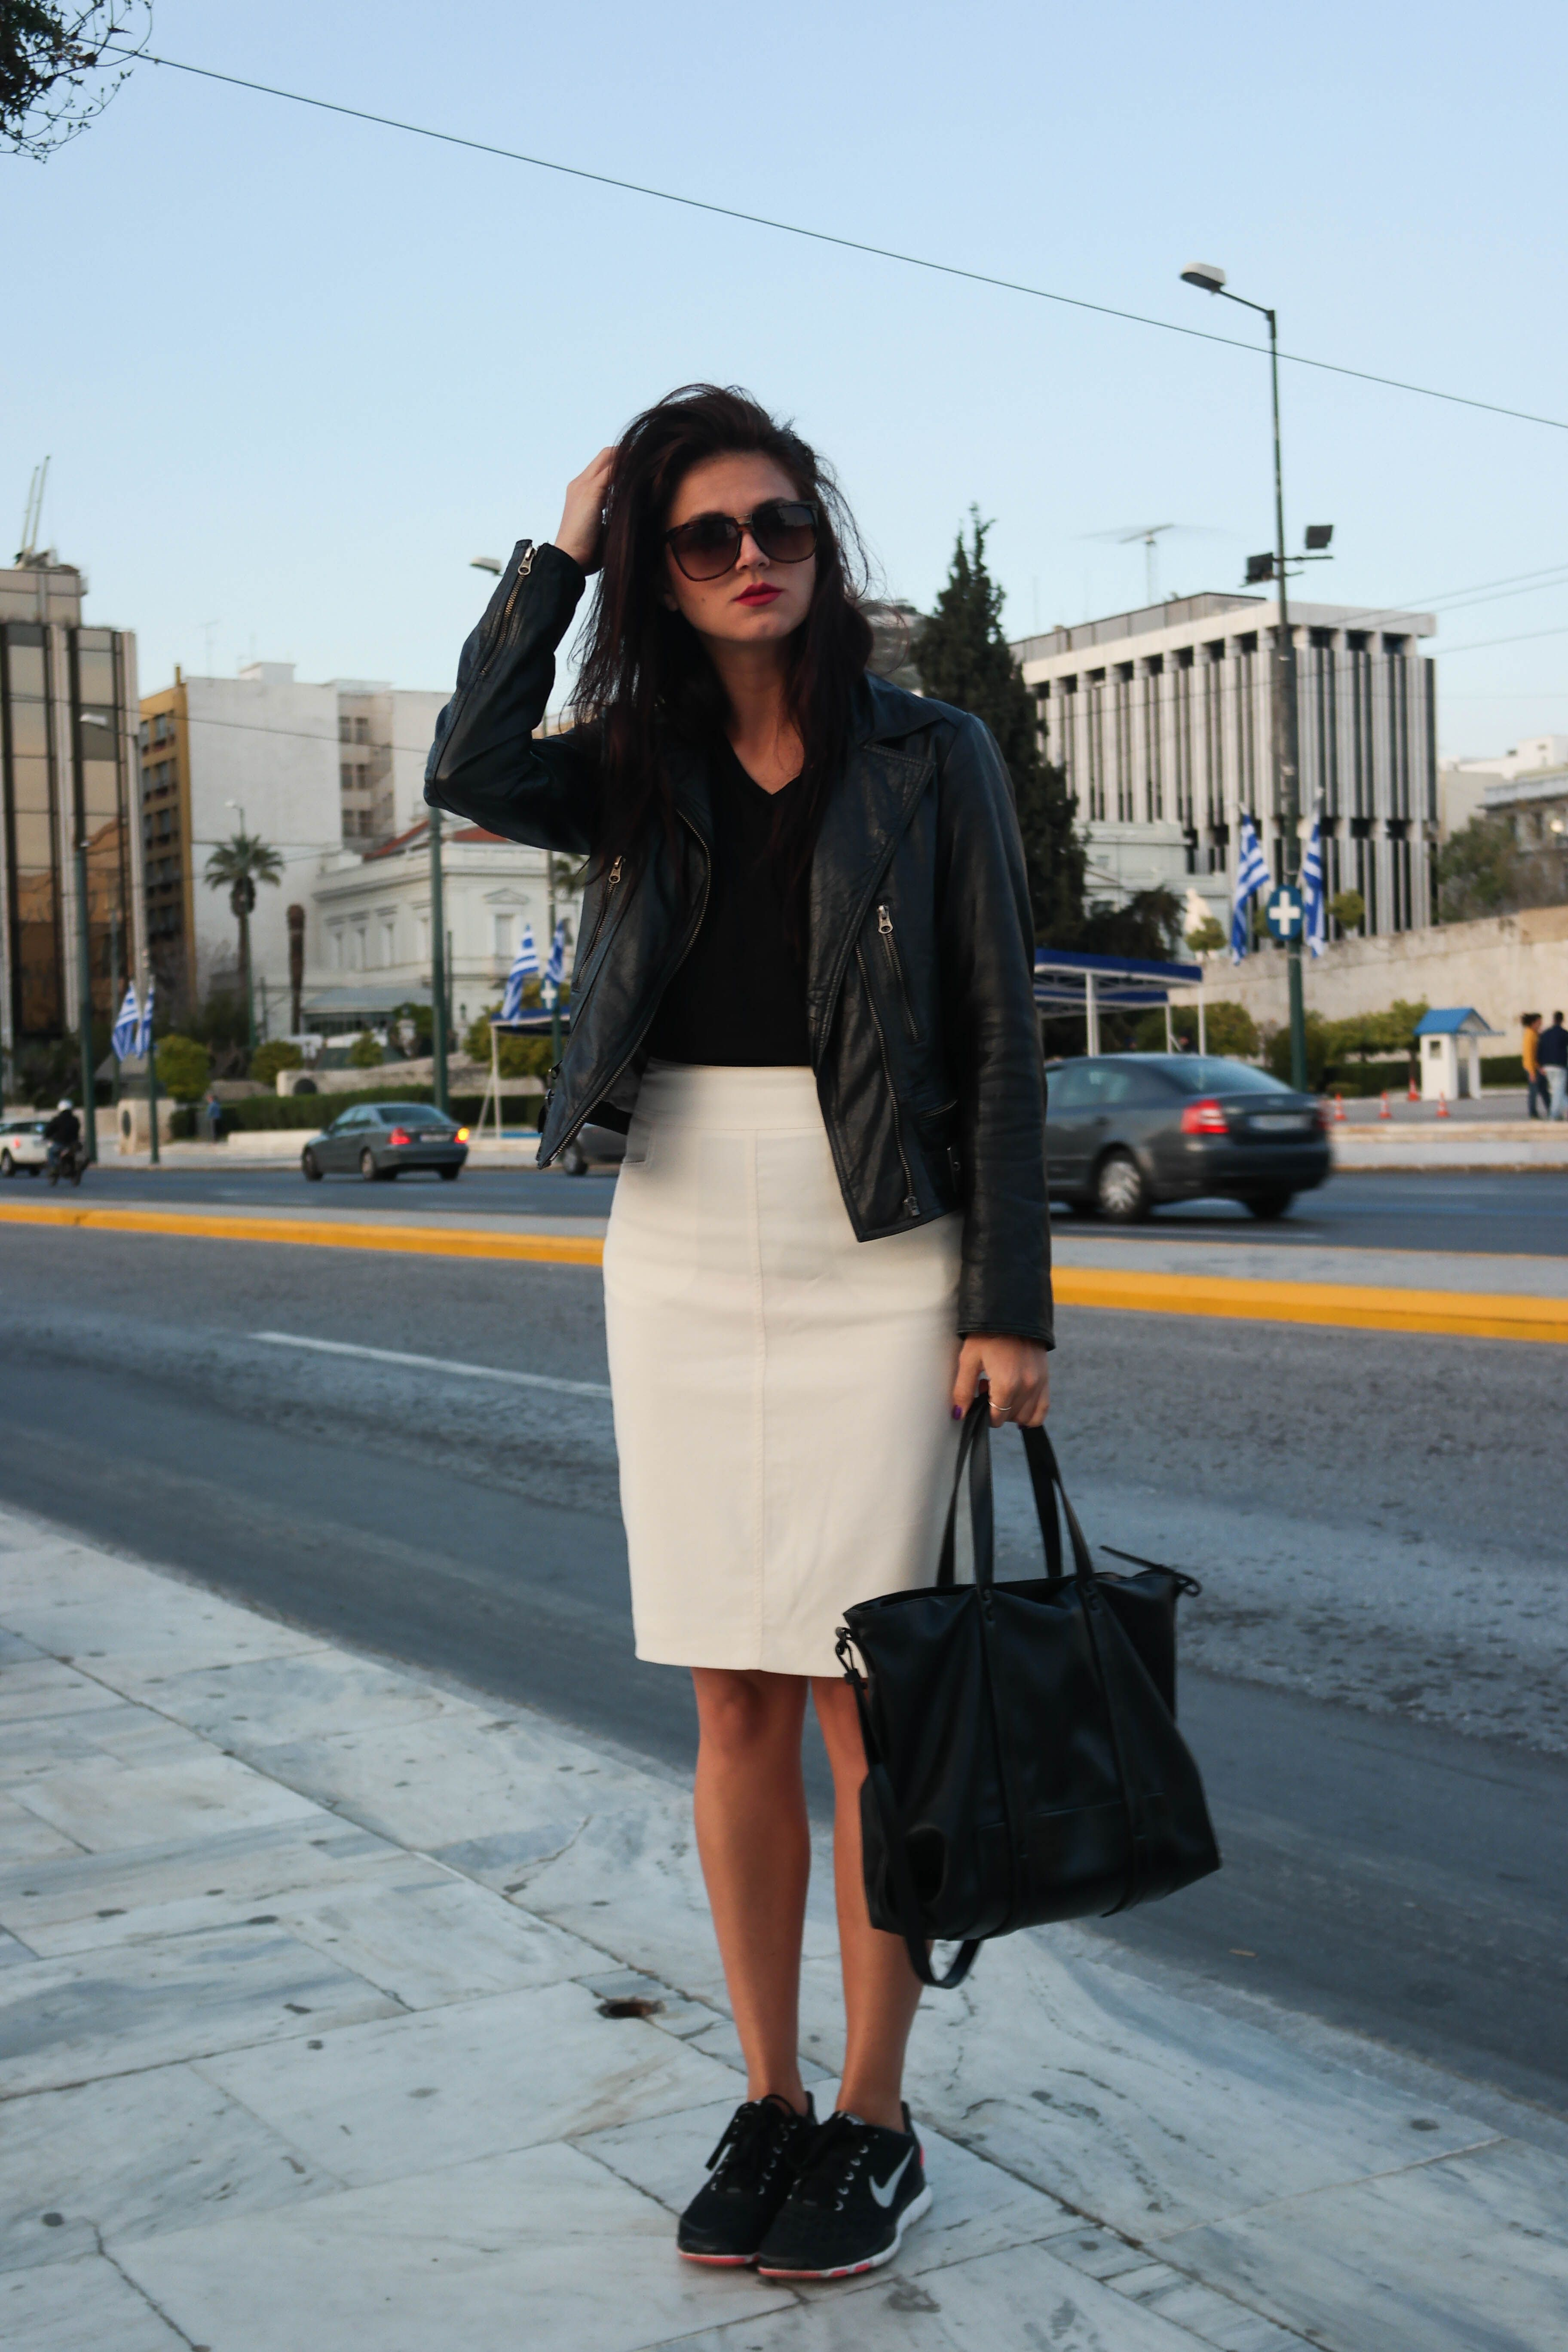 43f11e527 street style, Athens, Greece, black and white, leather, black leather,  leather jacket, white pencil skirt, sneakers, sneakers outfit, sneakers and  skirt, ...